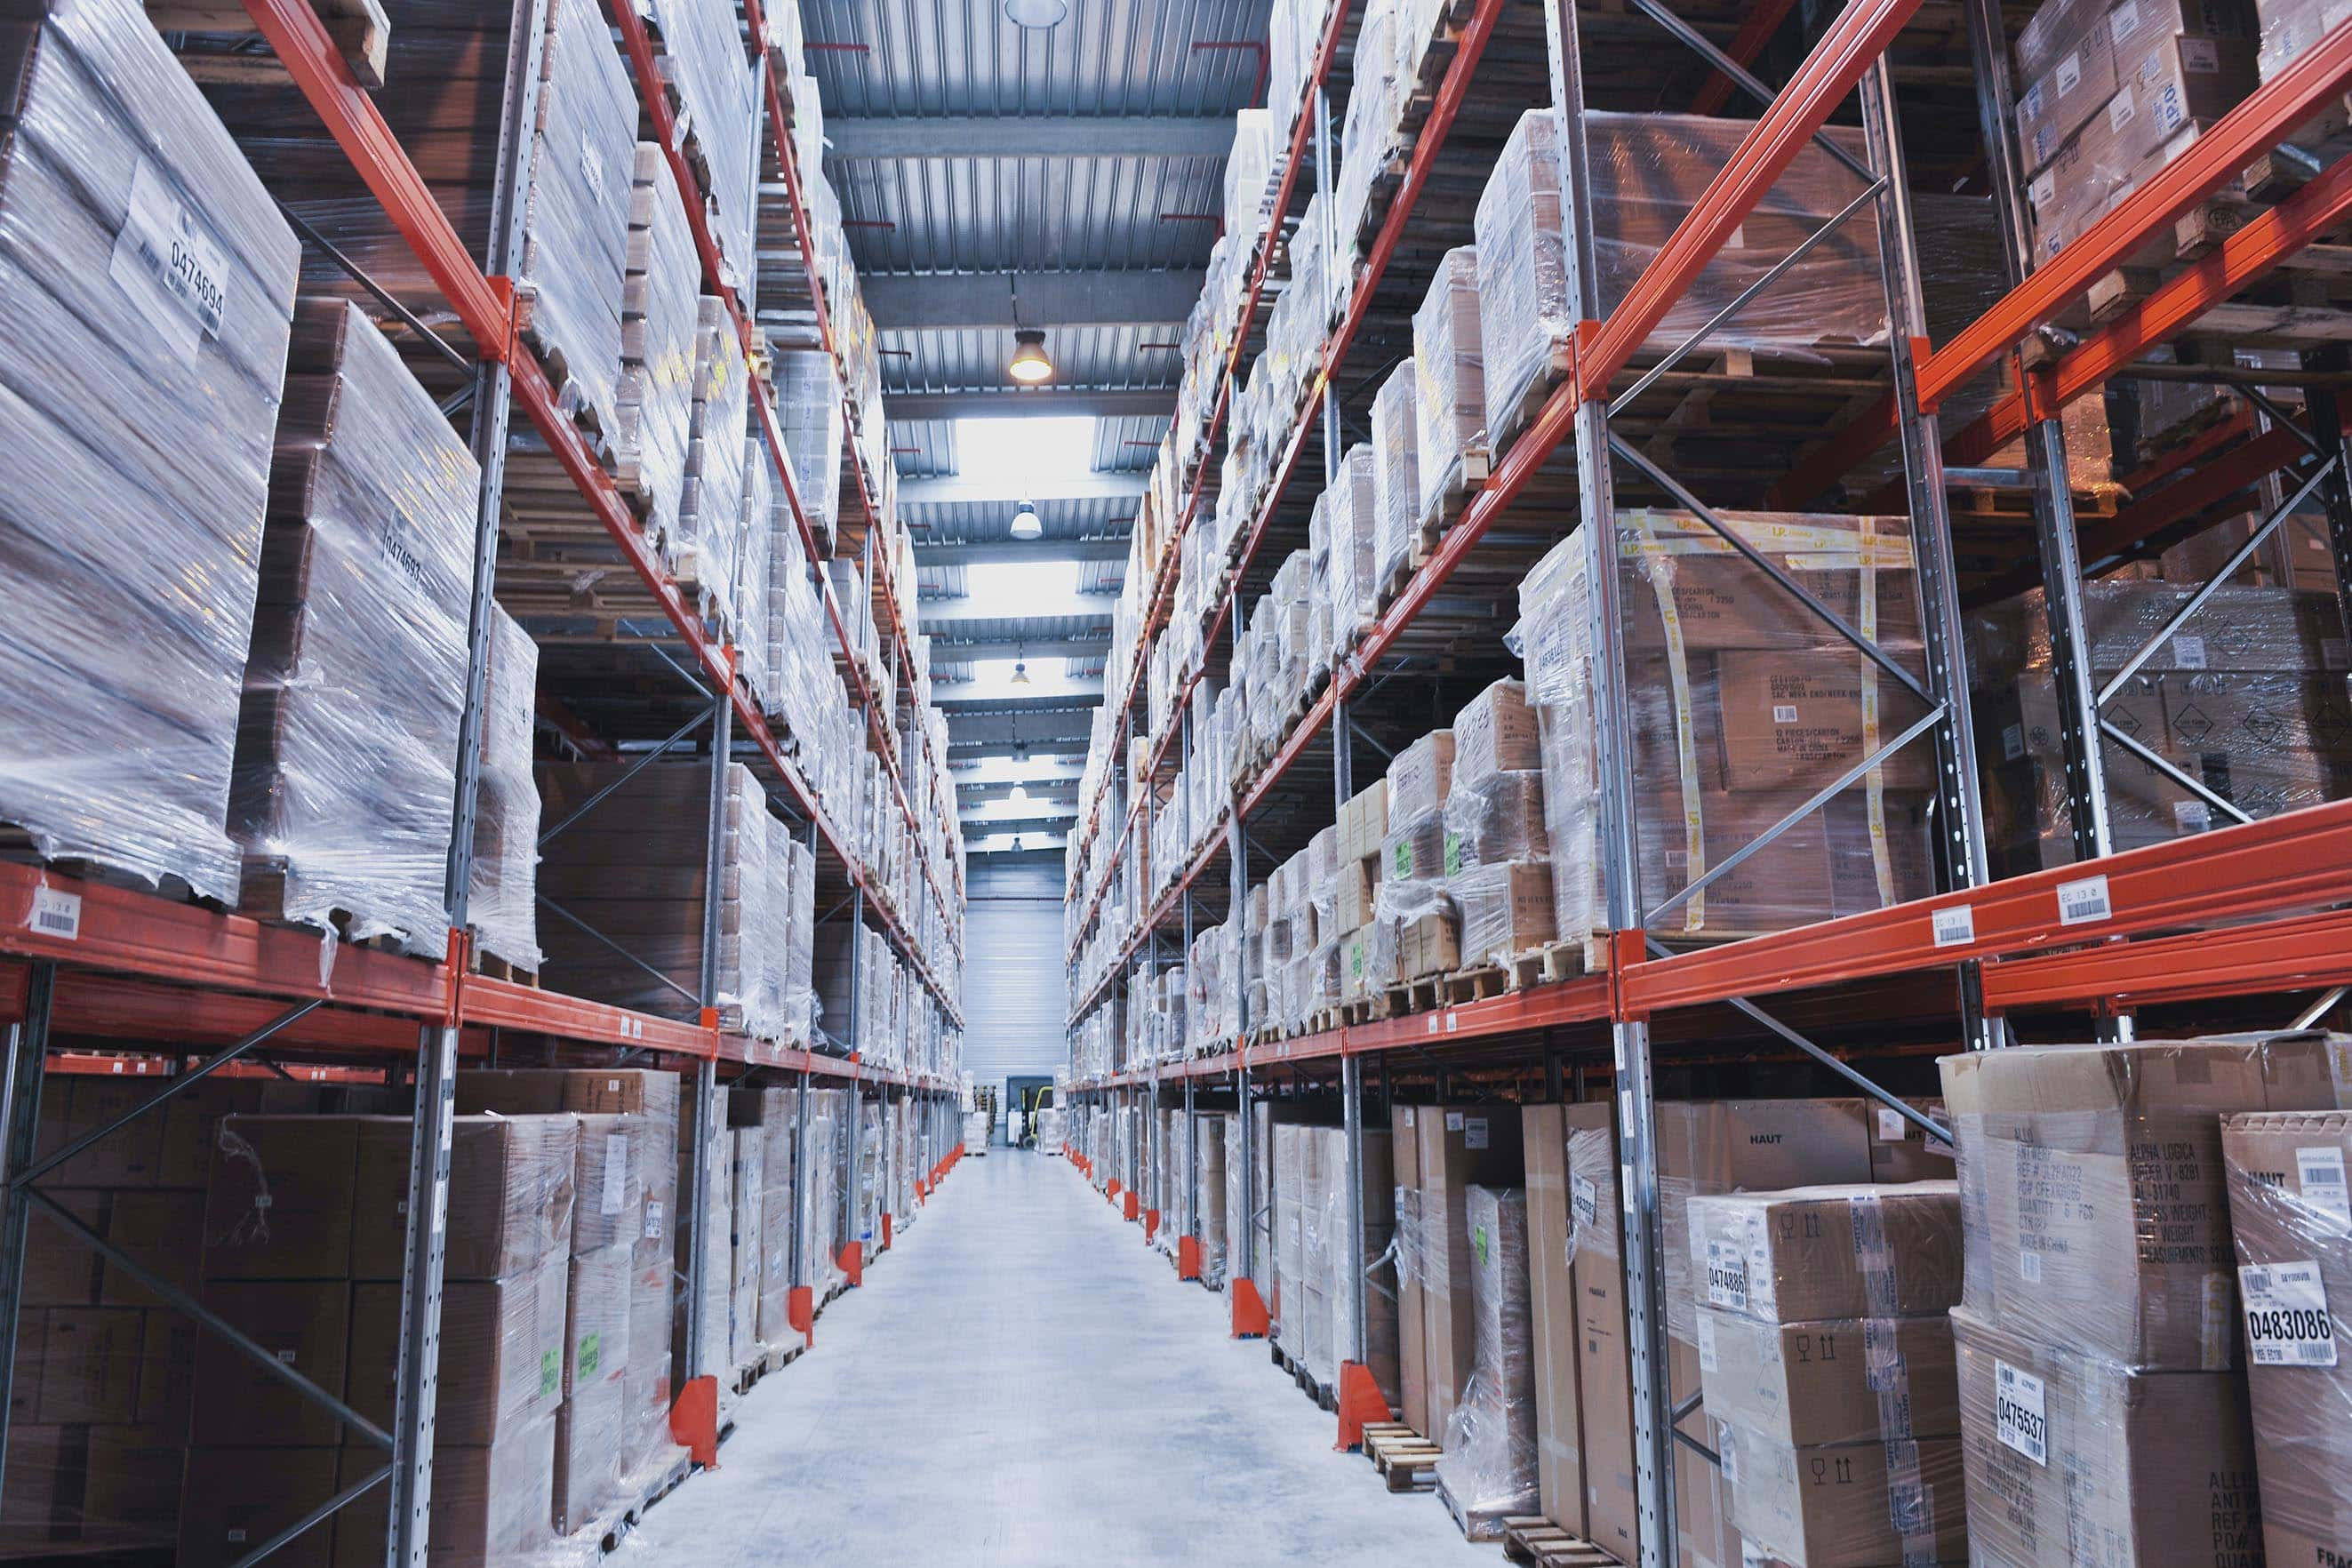 Sidoman warehousing and freight forwarding